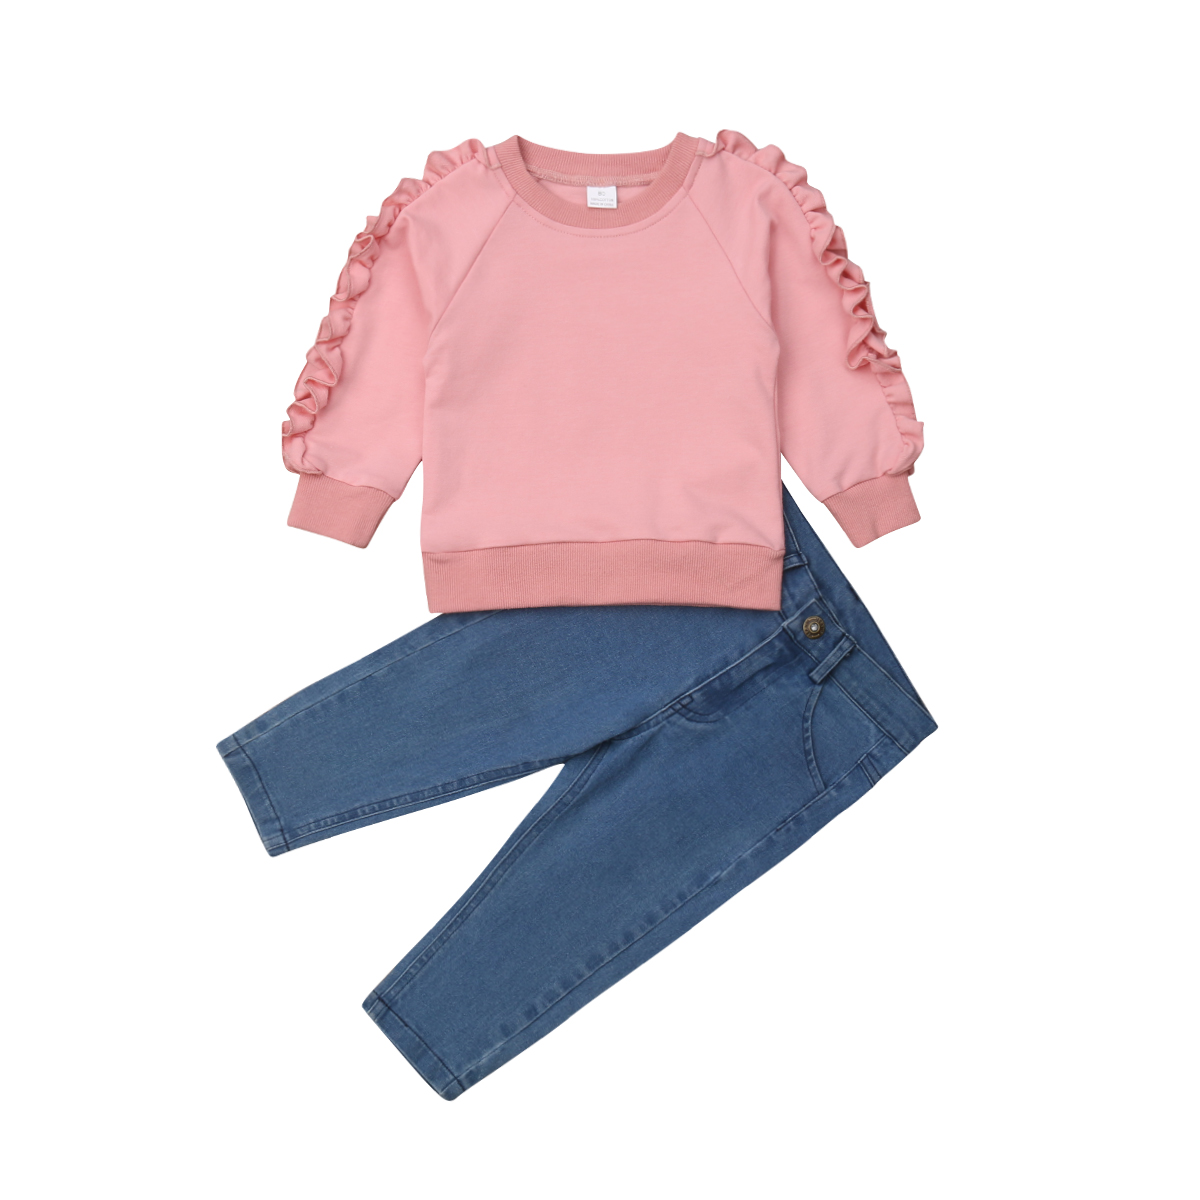 Toddler Kids Baby Girls Outfits Icing Ruffle Tops T shirt Jeans Pants Clothes